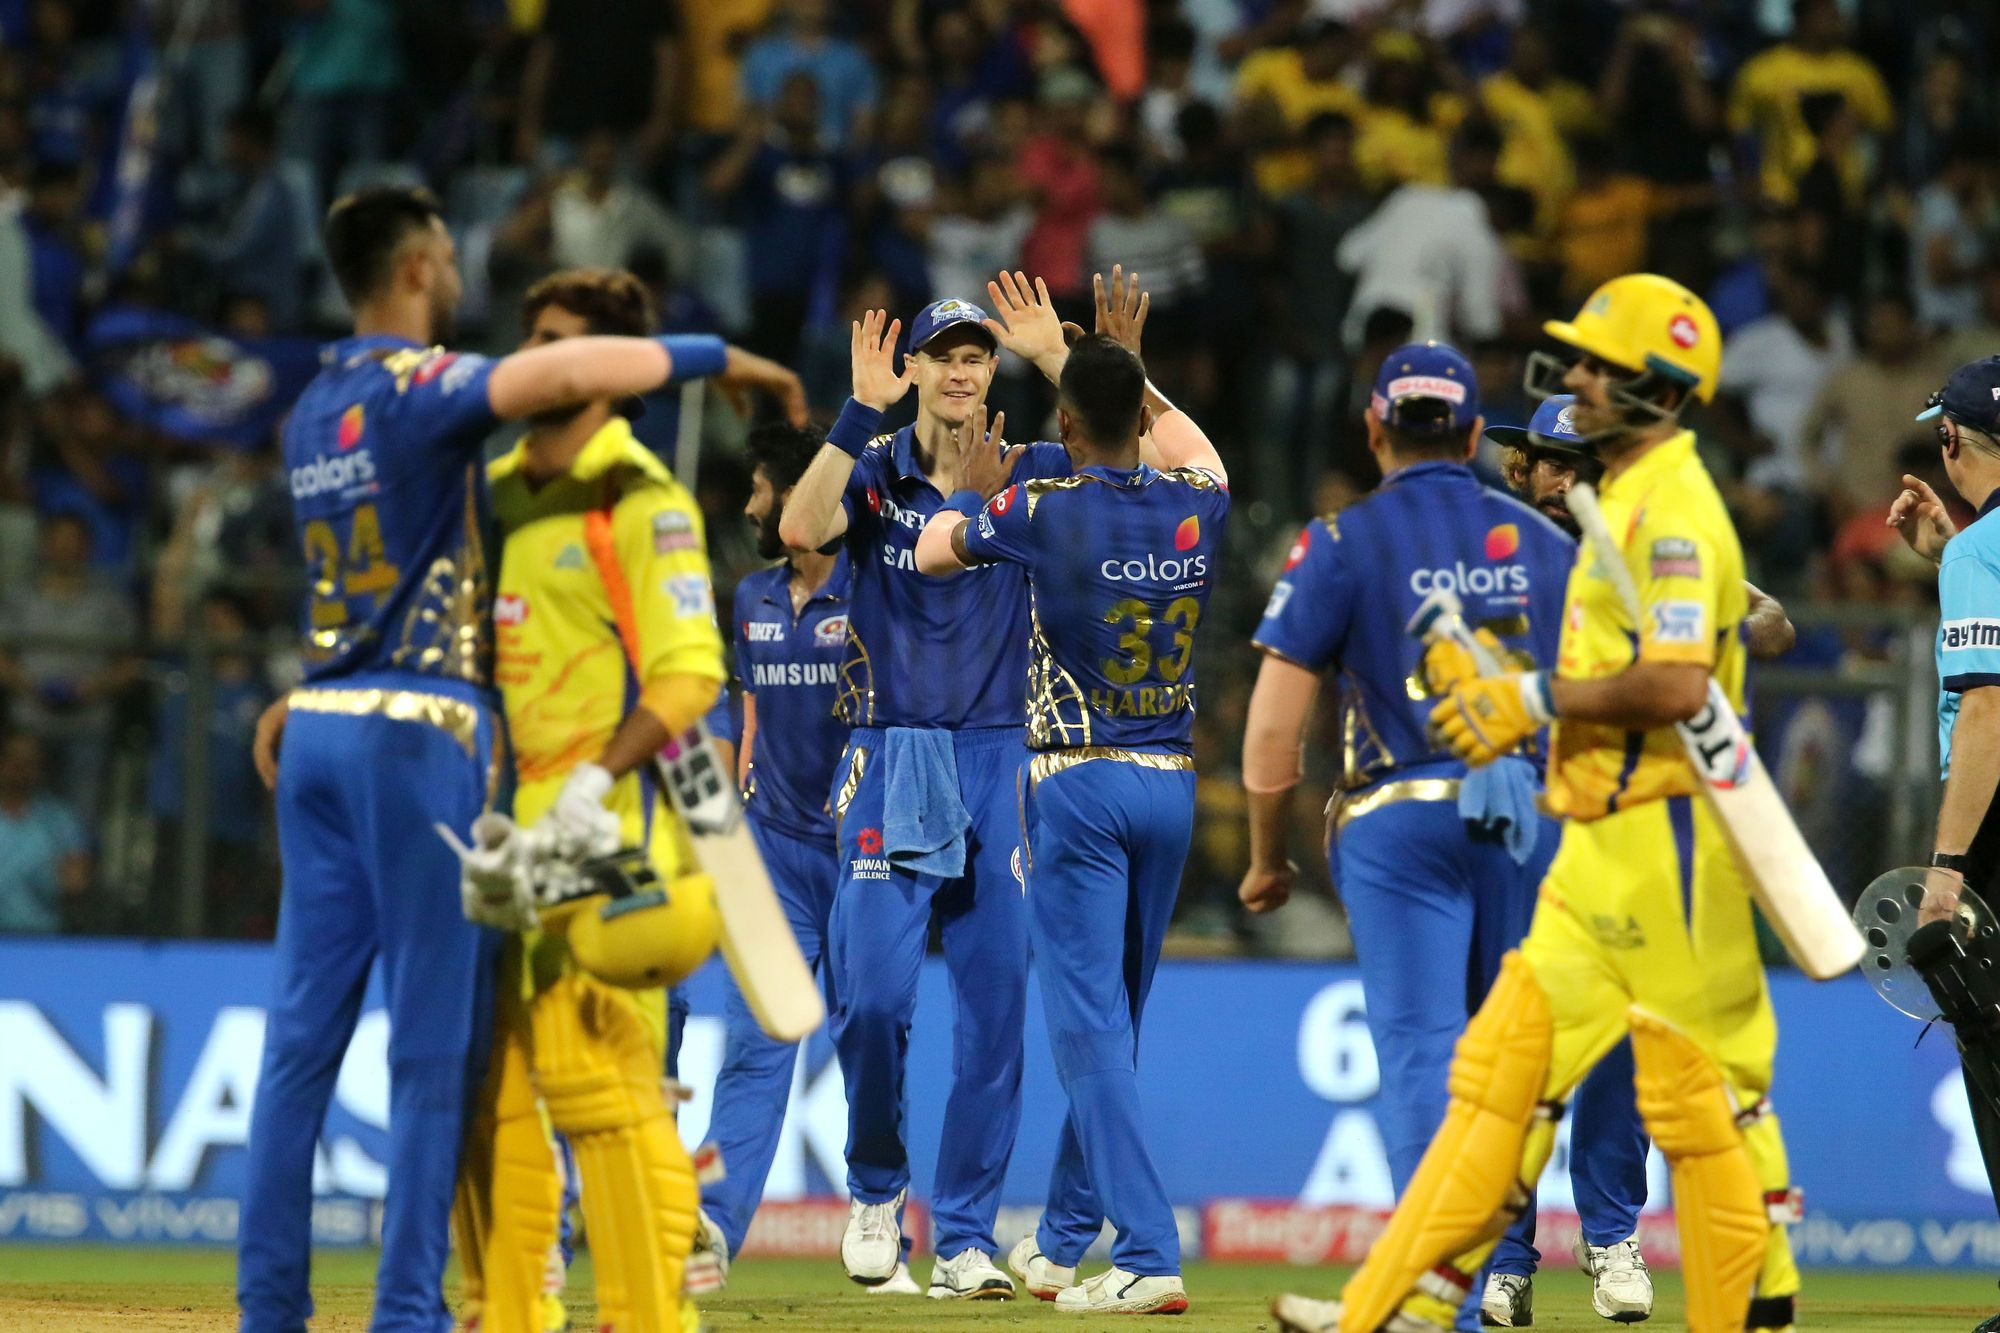 TeluguStop.com - Ipl 2020 Mi Vs Csk: Mumbai Indians At An Advantage